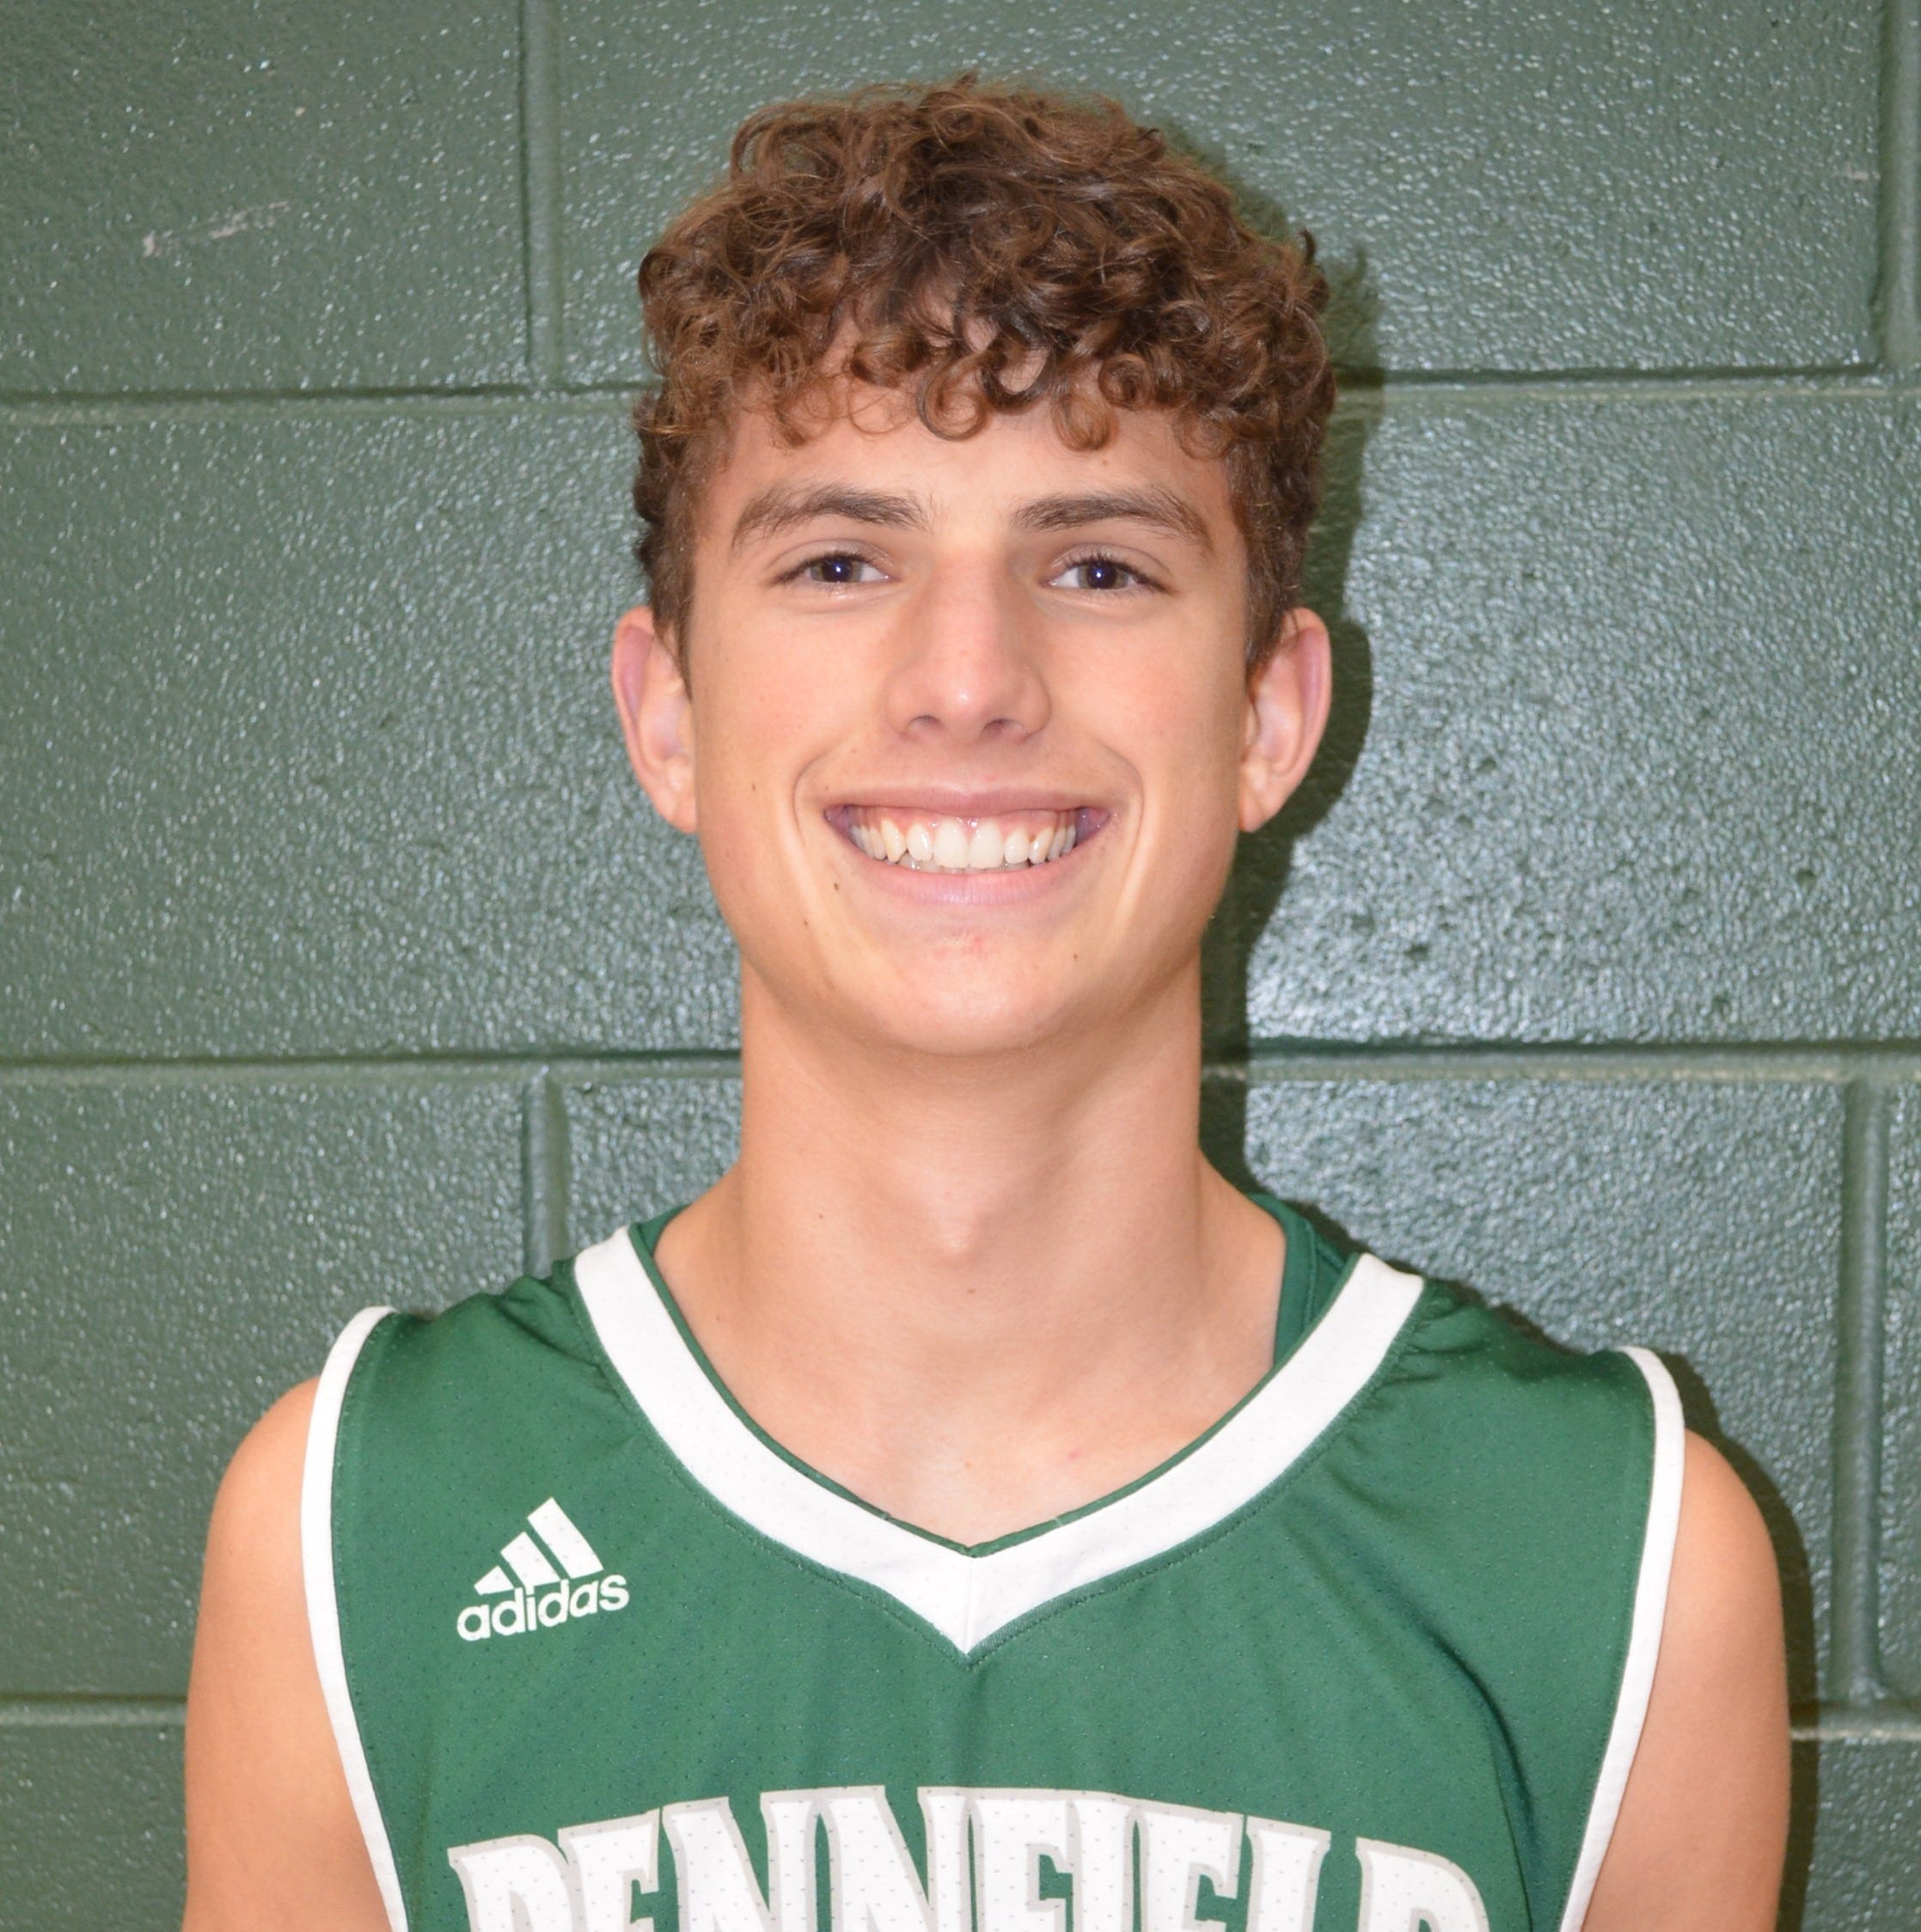 Basketball Notebook: Half-court shot at the buzzer gives Pennfield win in overtime